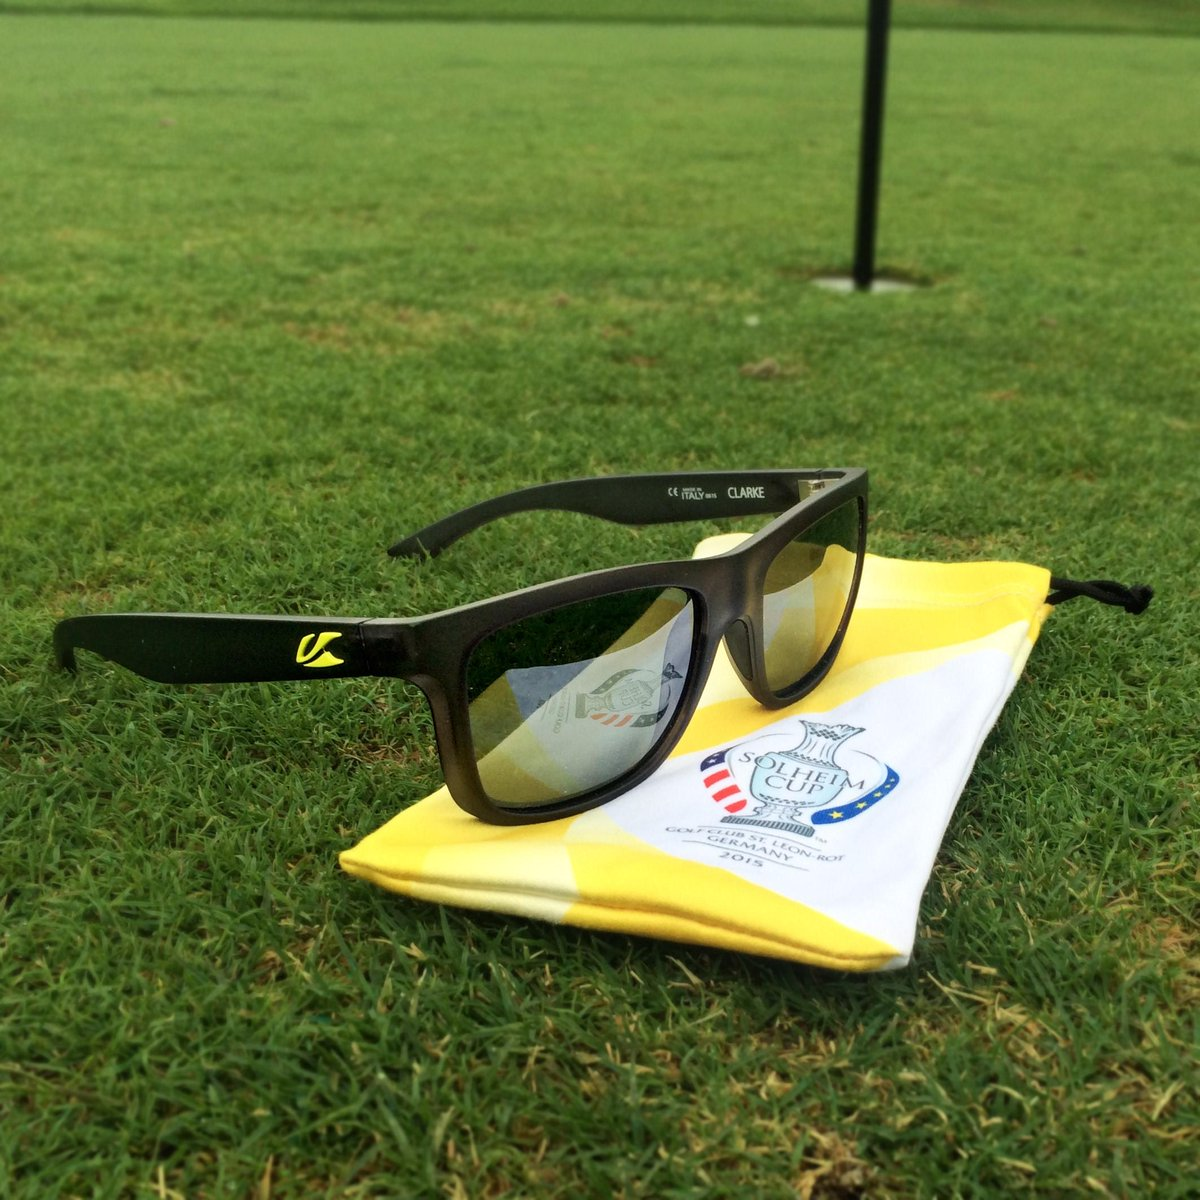 Win these Kaenon sunglasses – as seen on the @SolheimCupEuro team. Just RT & Follow @Kaenon, contest starts today. http://t.co/LUfsq5UemN